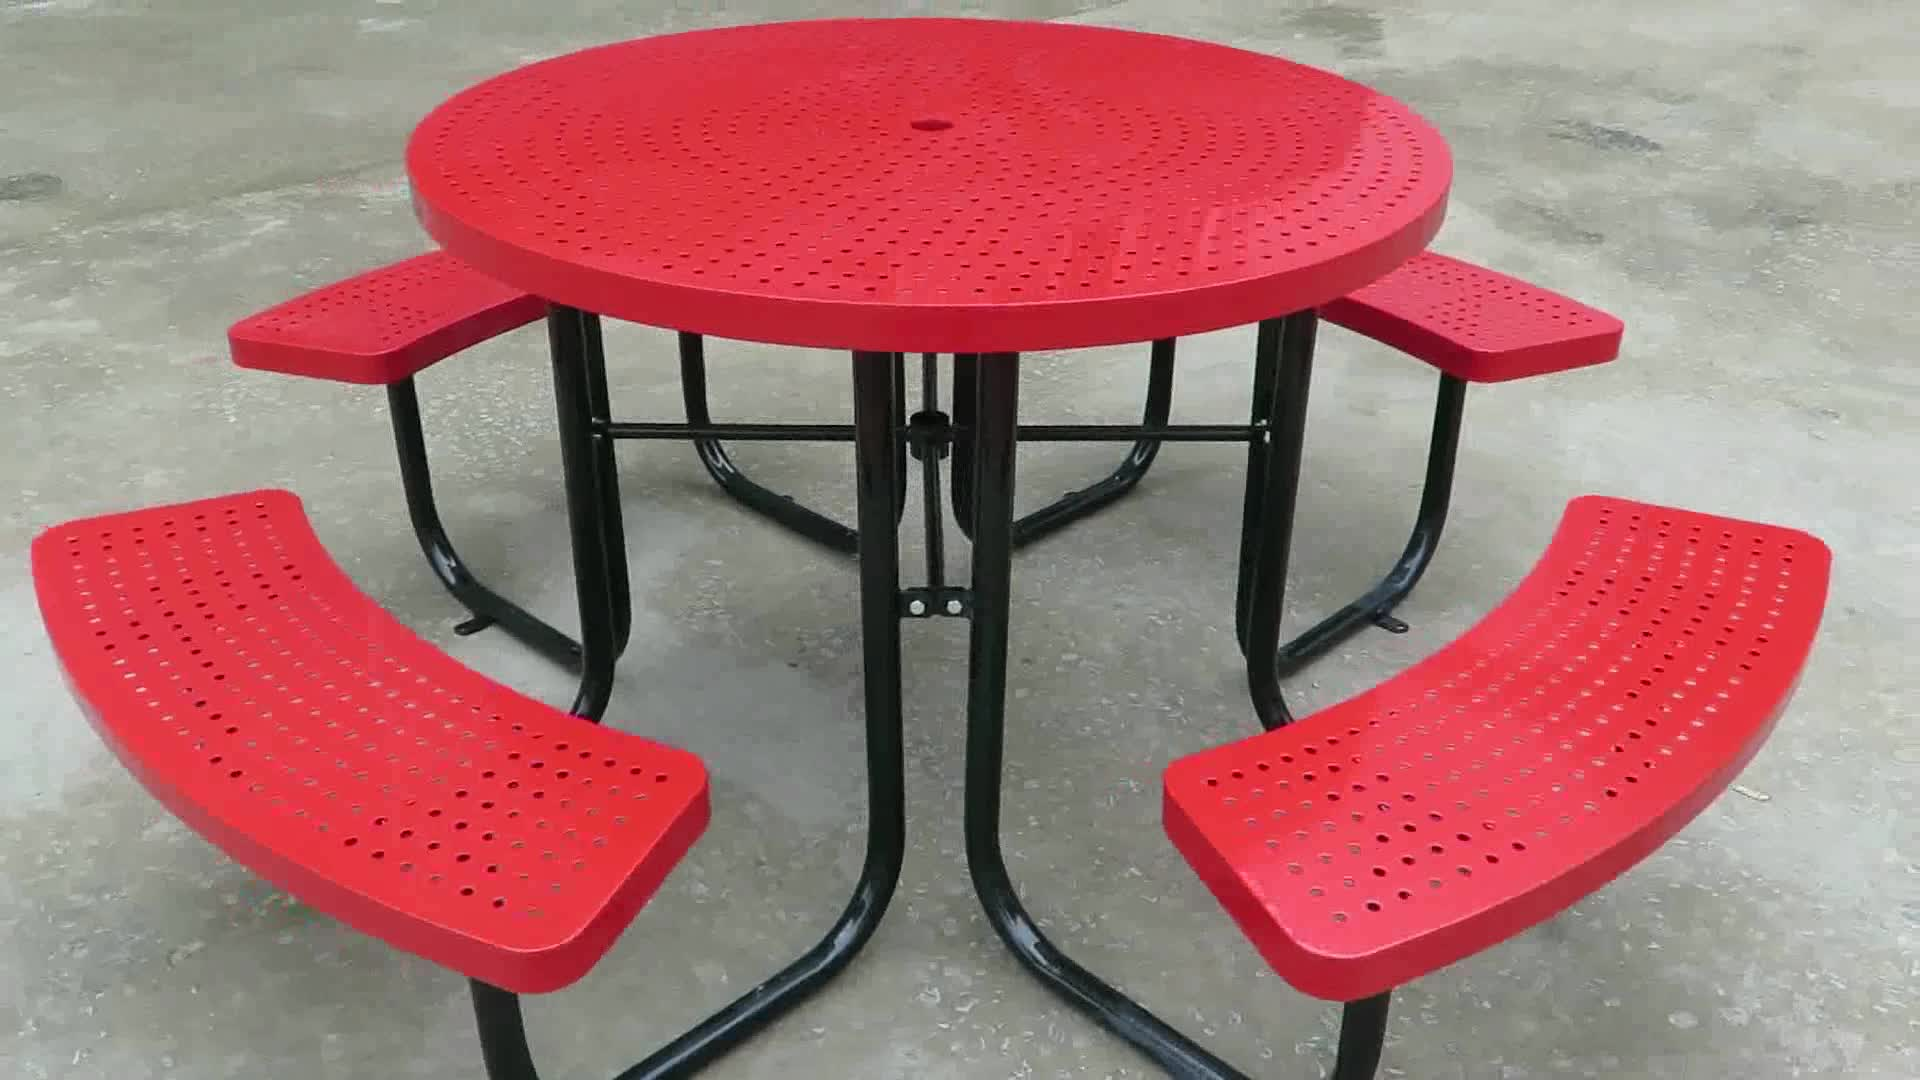 City furniture manufacturer , Round Garden picnic table benches, patio picnic table chair set